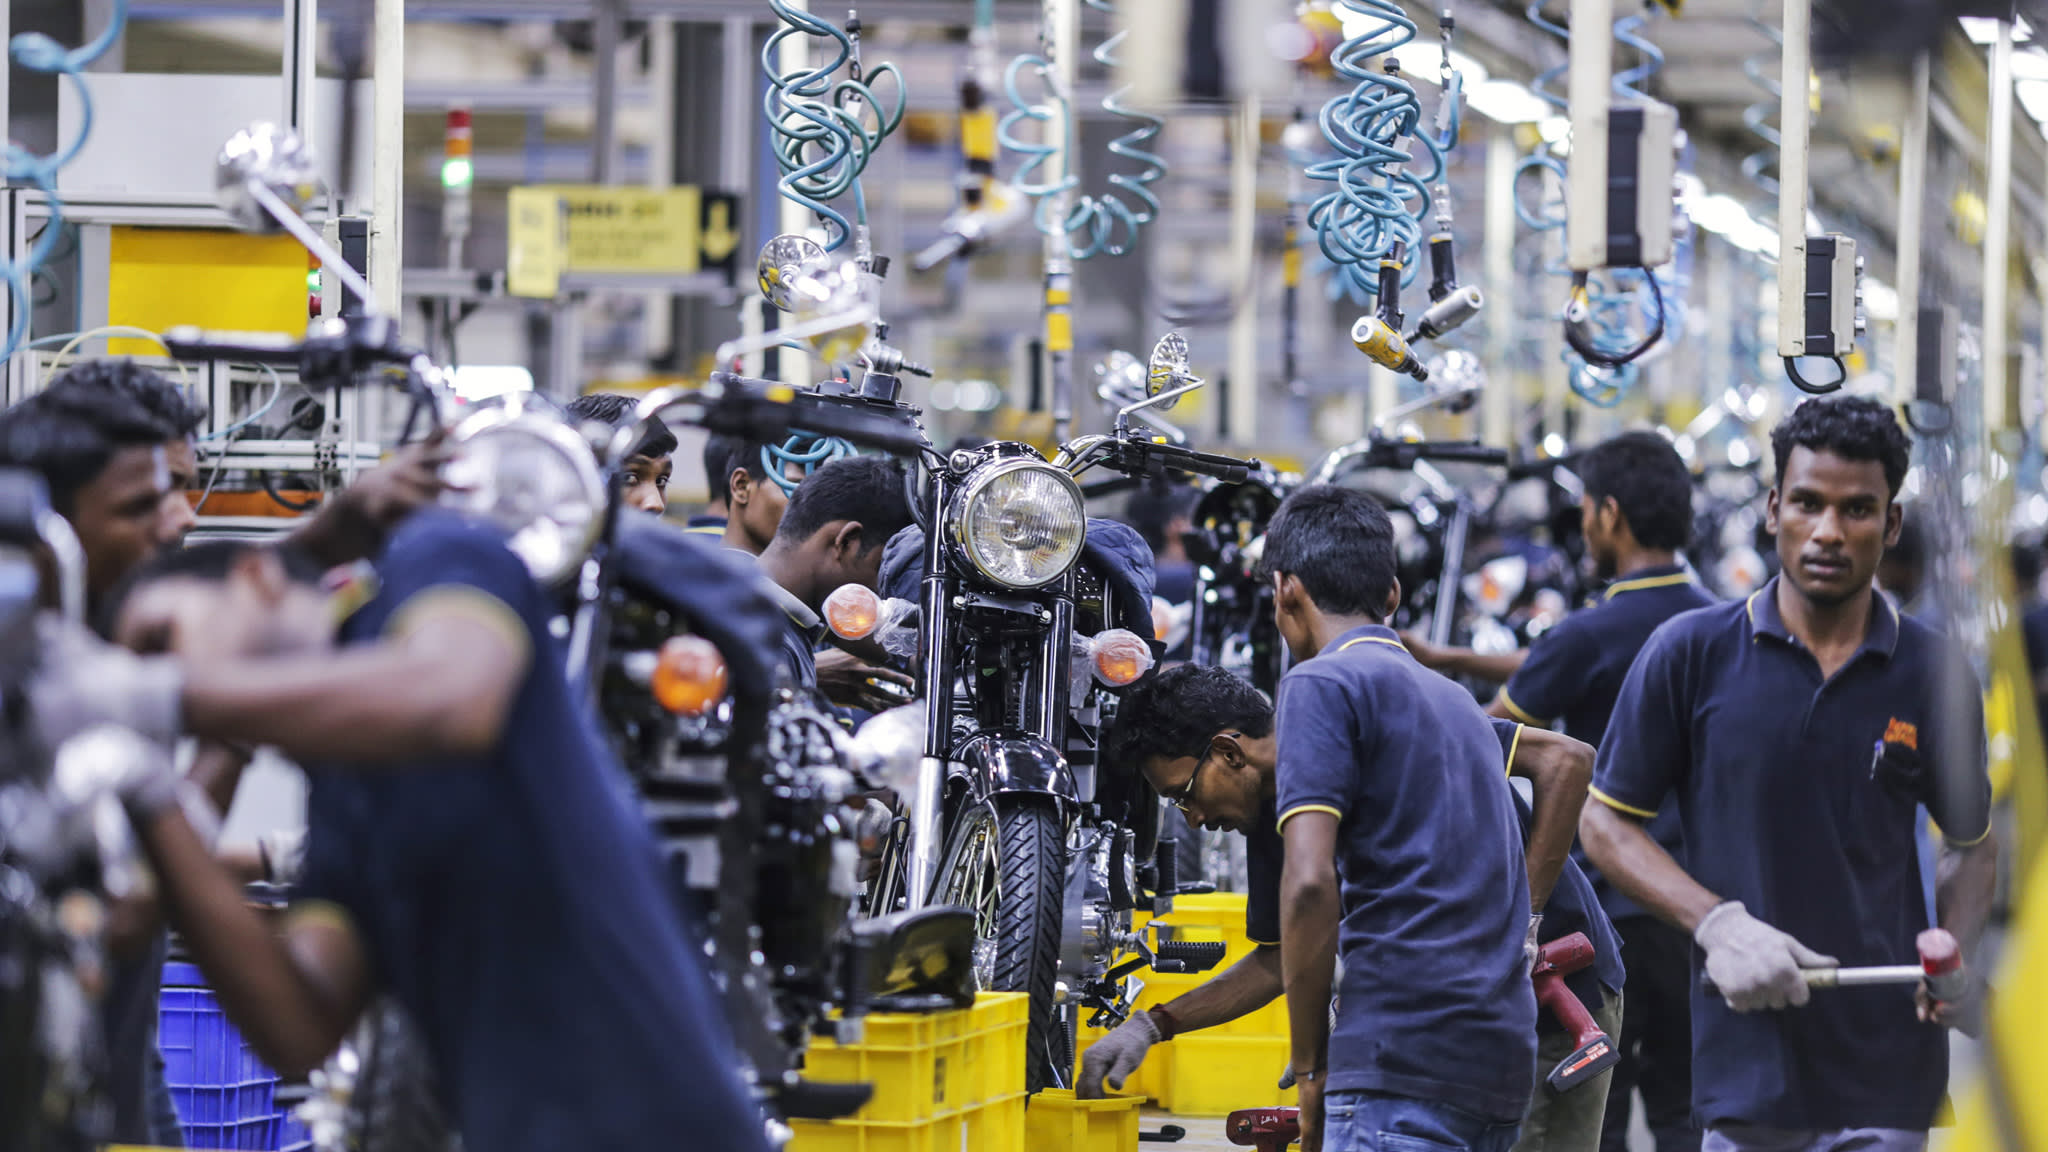 India stays at top of growth table with 7.3% GDP rise | Financial Times